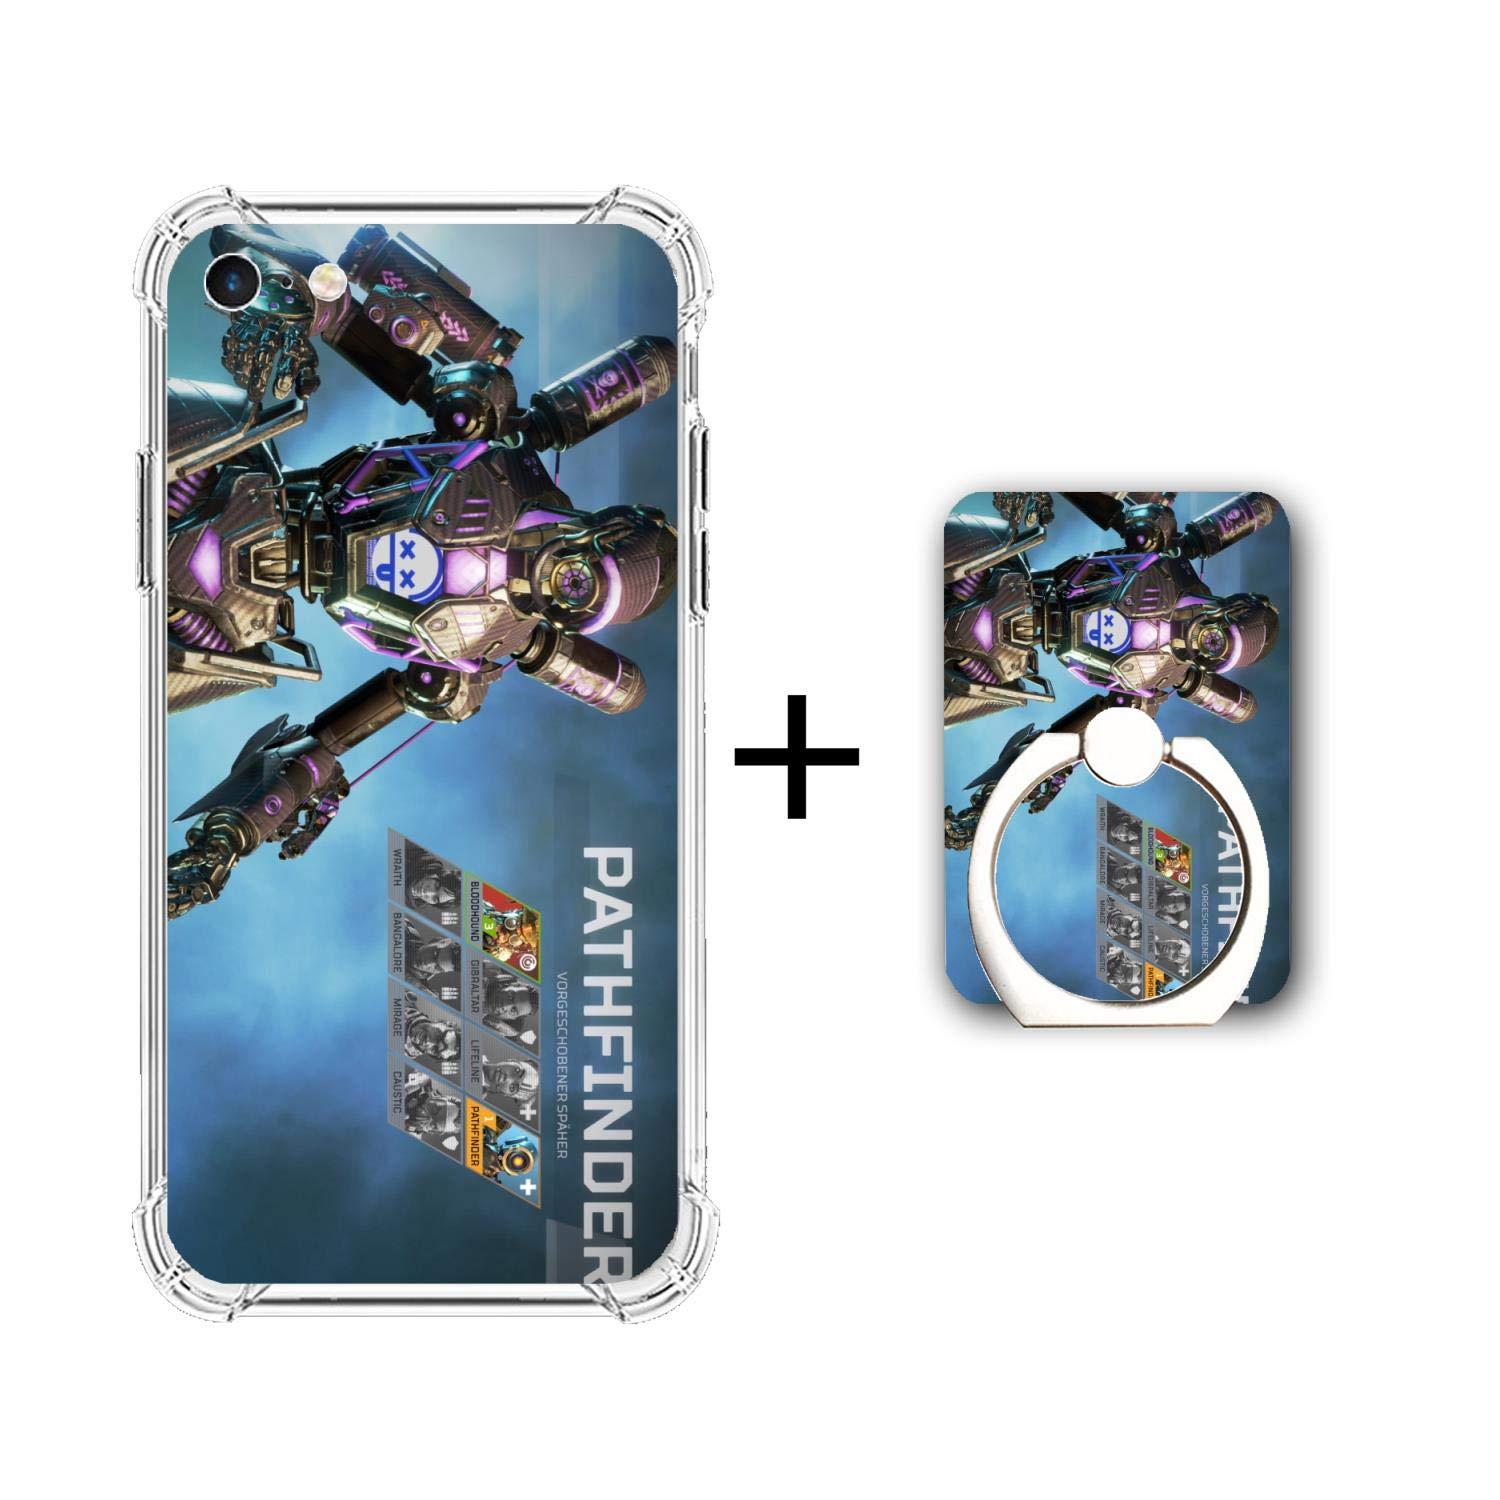 Amazon.com: Apex Legends-Phone Case for iPhone 6/6s, Crystal ...